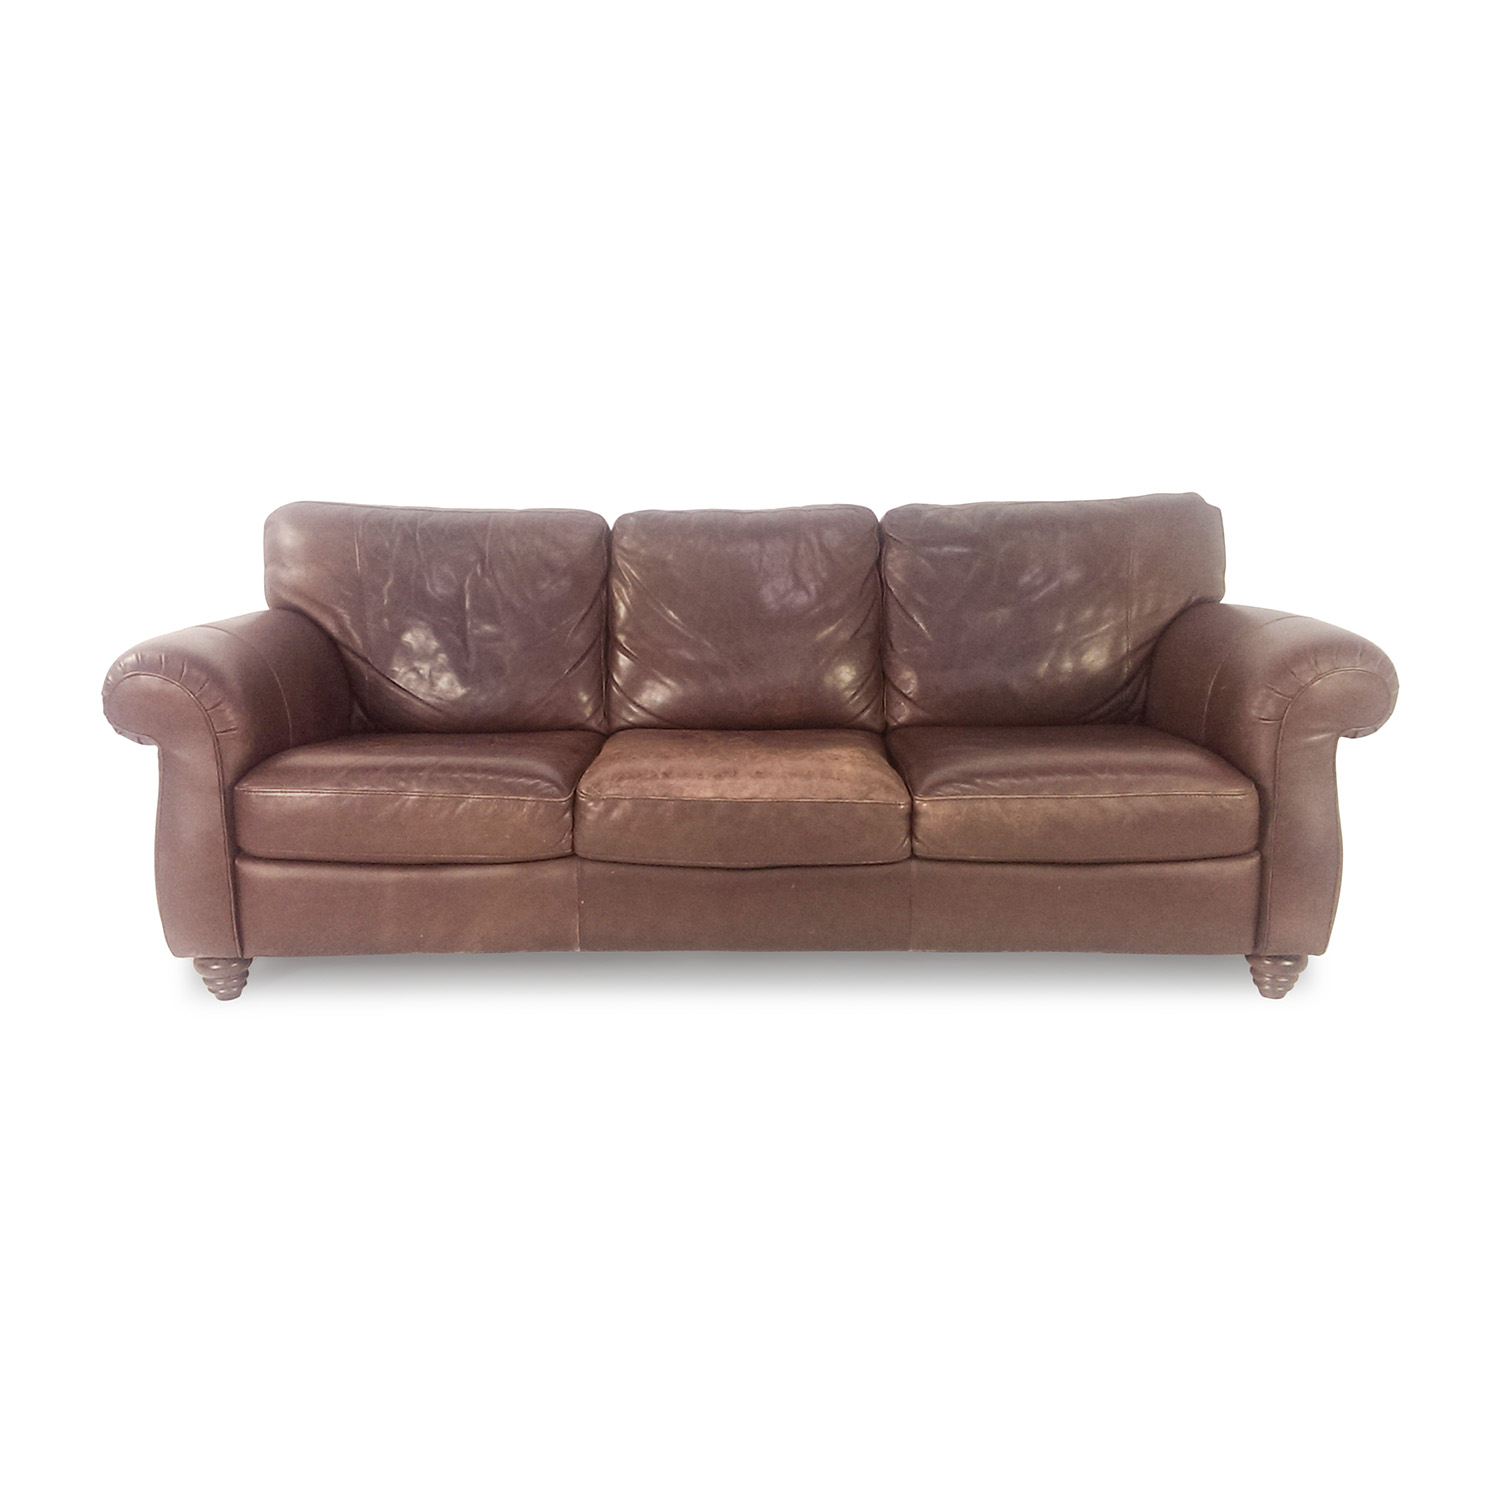 85% OFF - Natuzzi Natuzzi Brown Leather Couch / Sofas